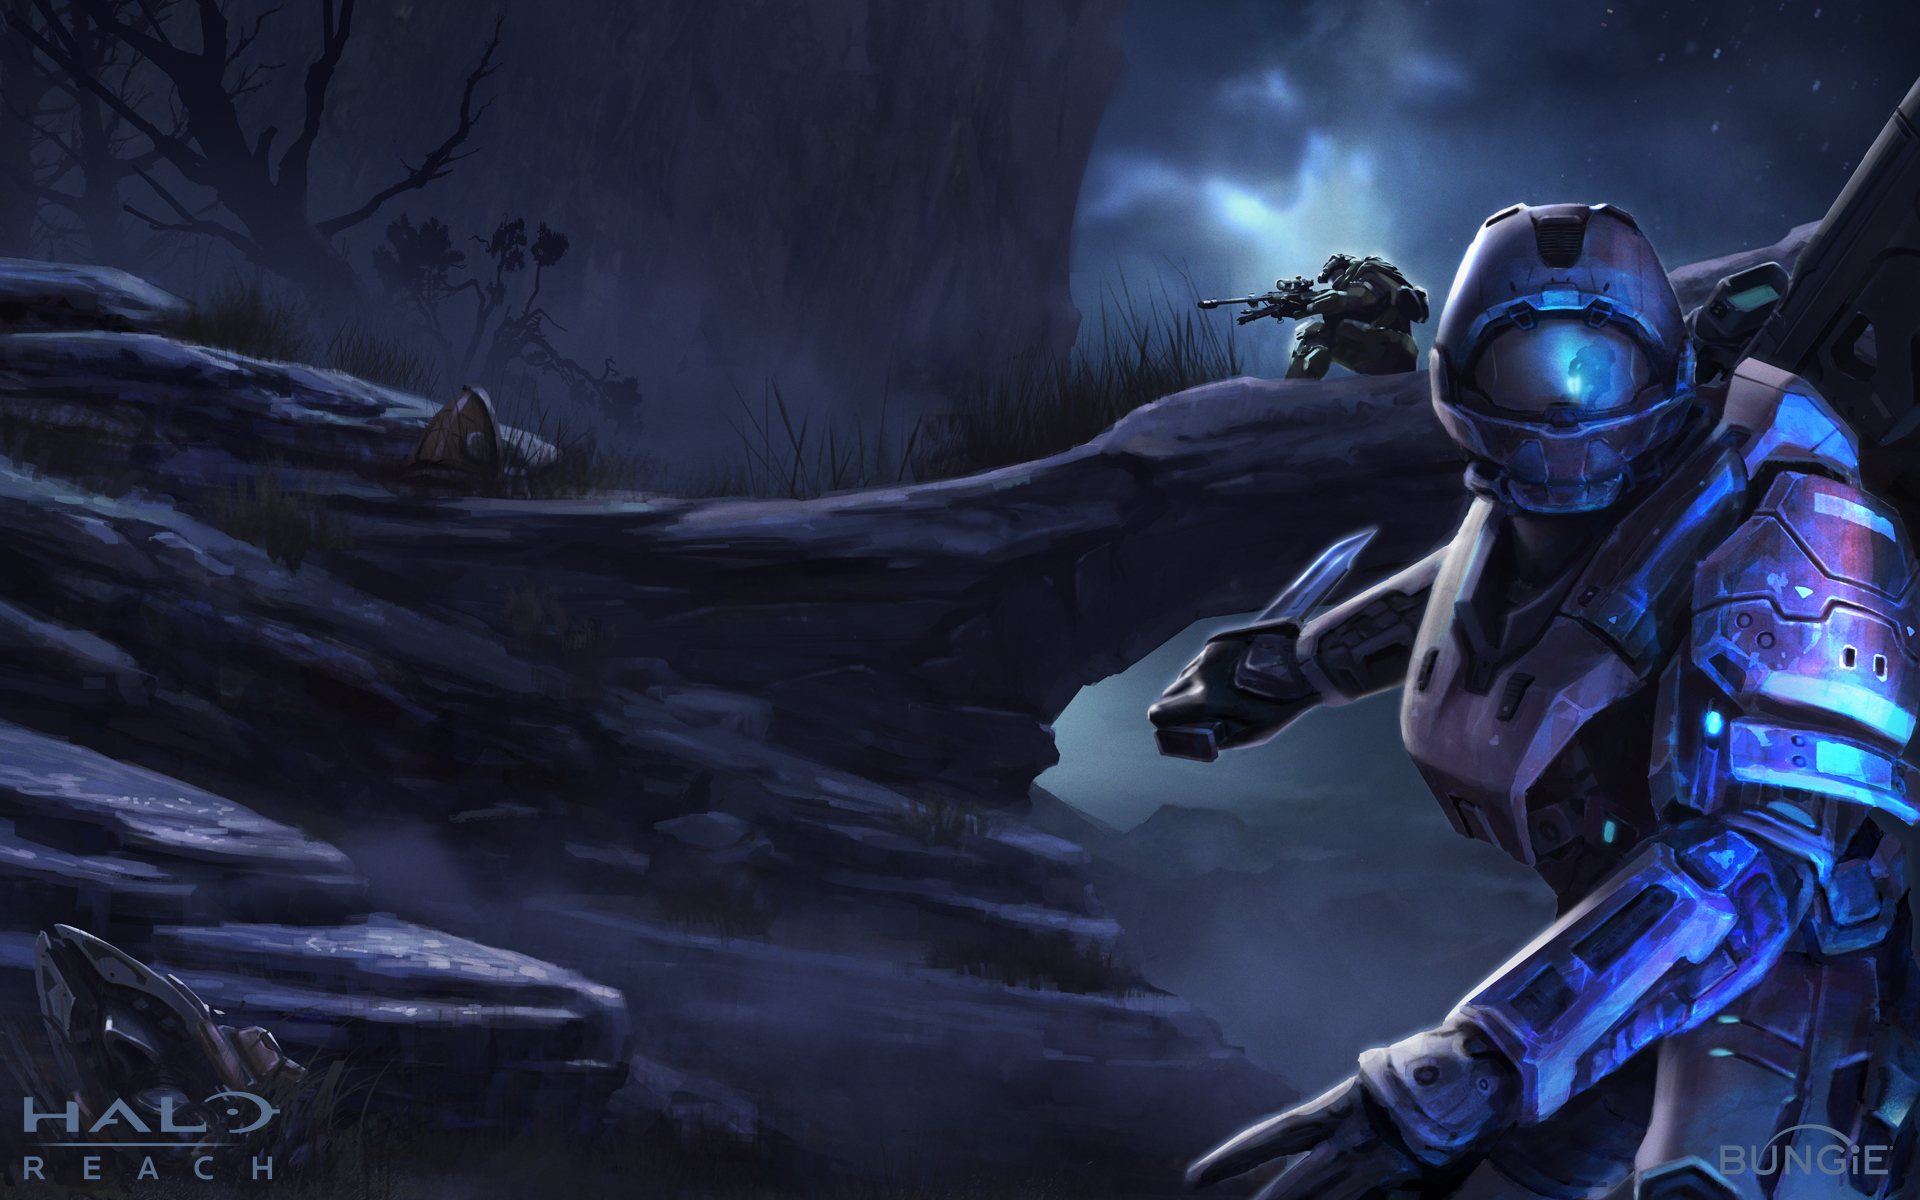 Cool Halo Reach Wallpapers Viewing Gallery 1920x1200px